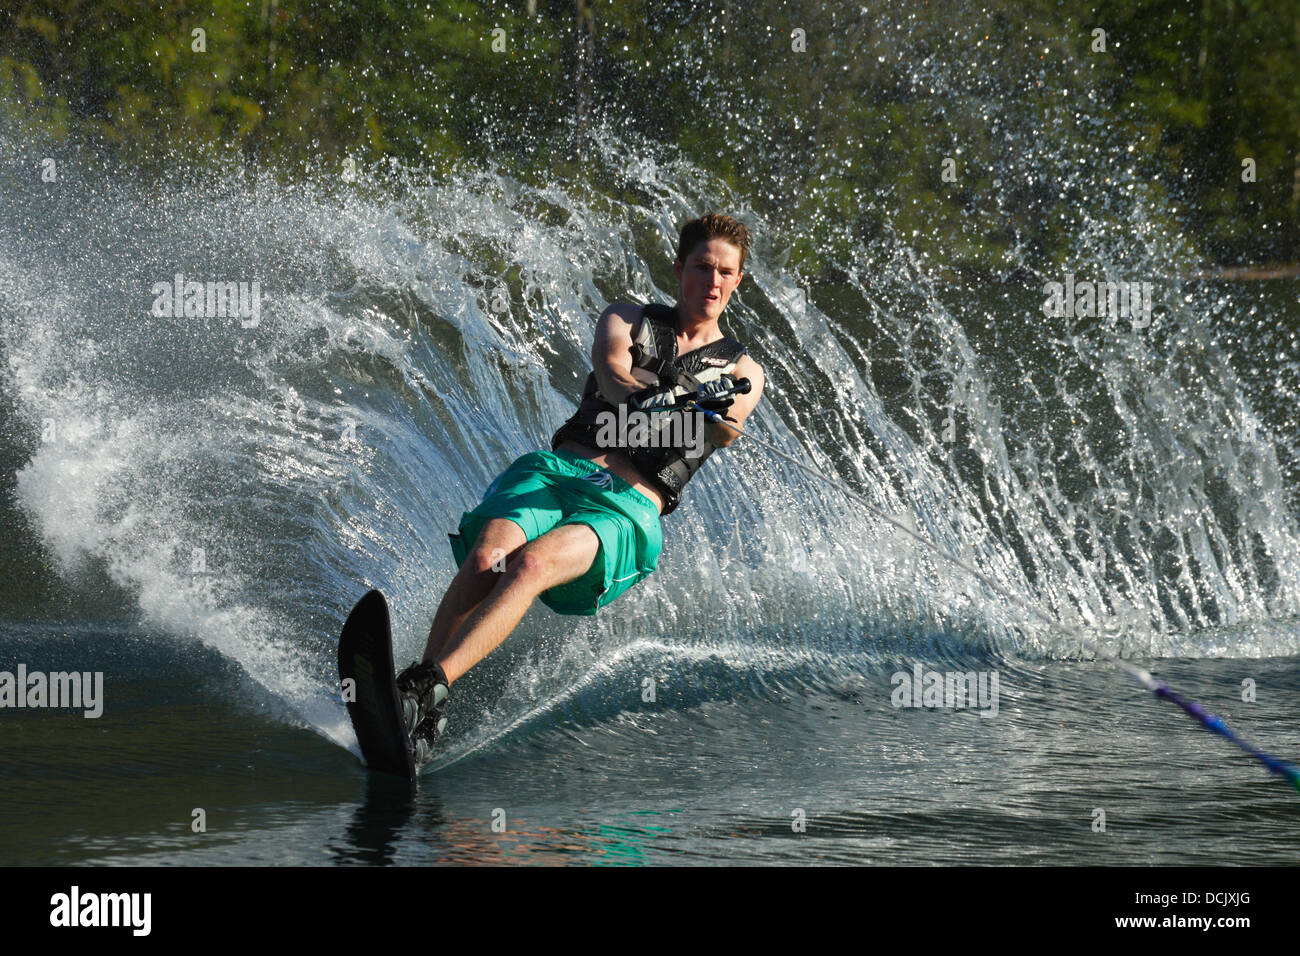 Teenage boy wakeboarding on Cultus Lake-Cultus Lake, British Columbia, Canada. - Stock Image